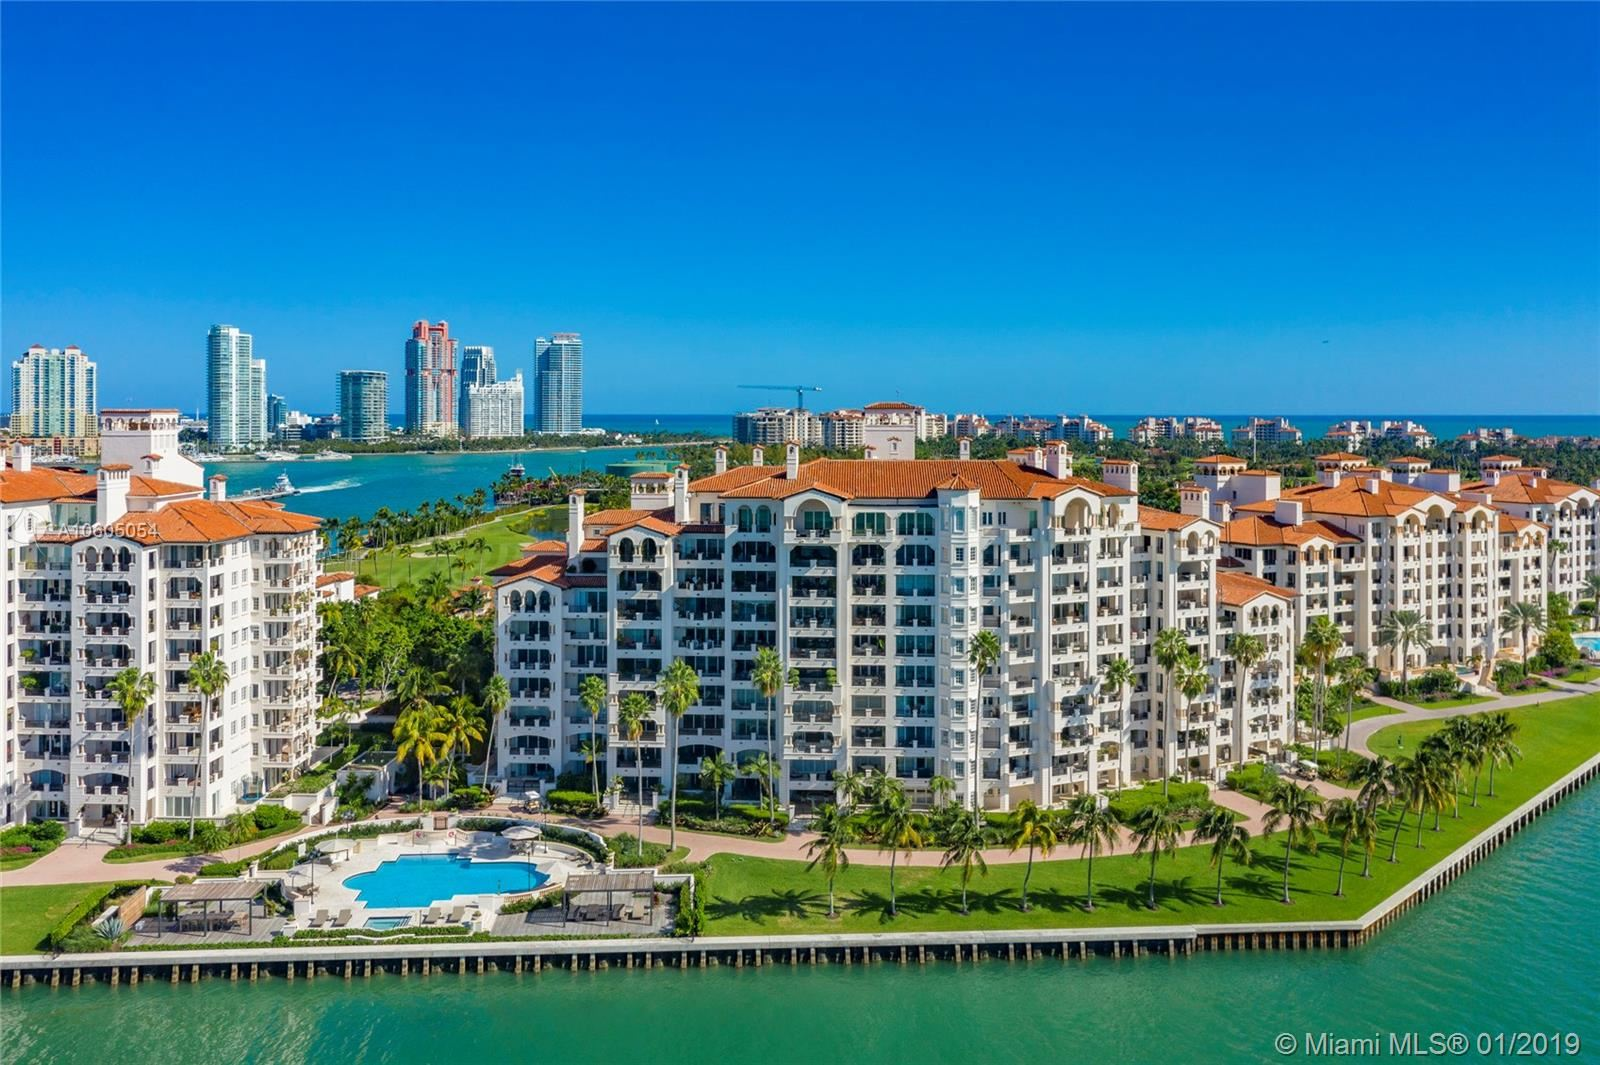 Photo 2 of Listing MLS a10605054 in 5203 Fisher Island Drive #5203 Miami FL 33109